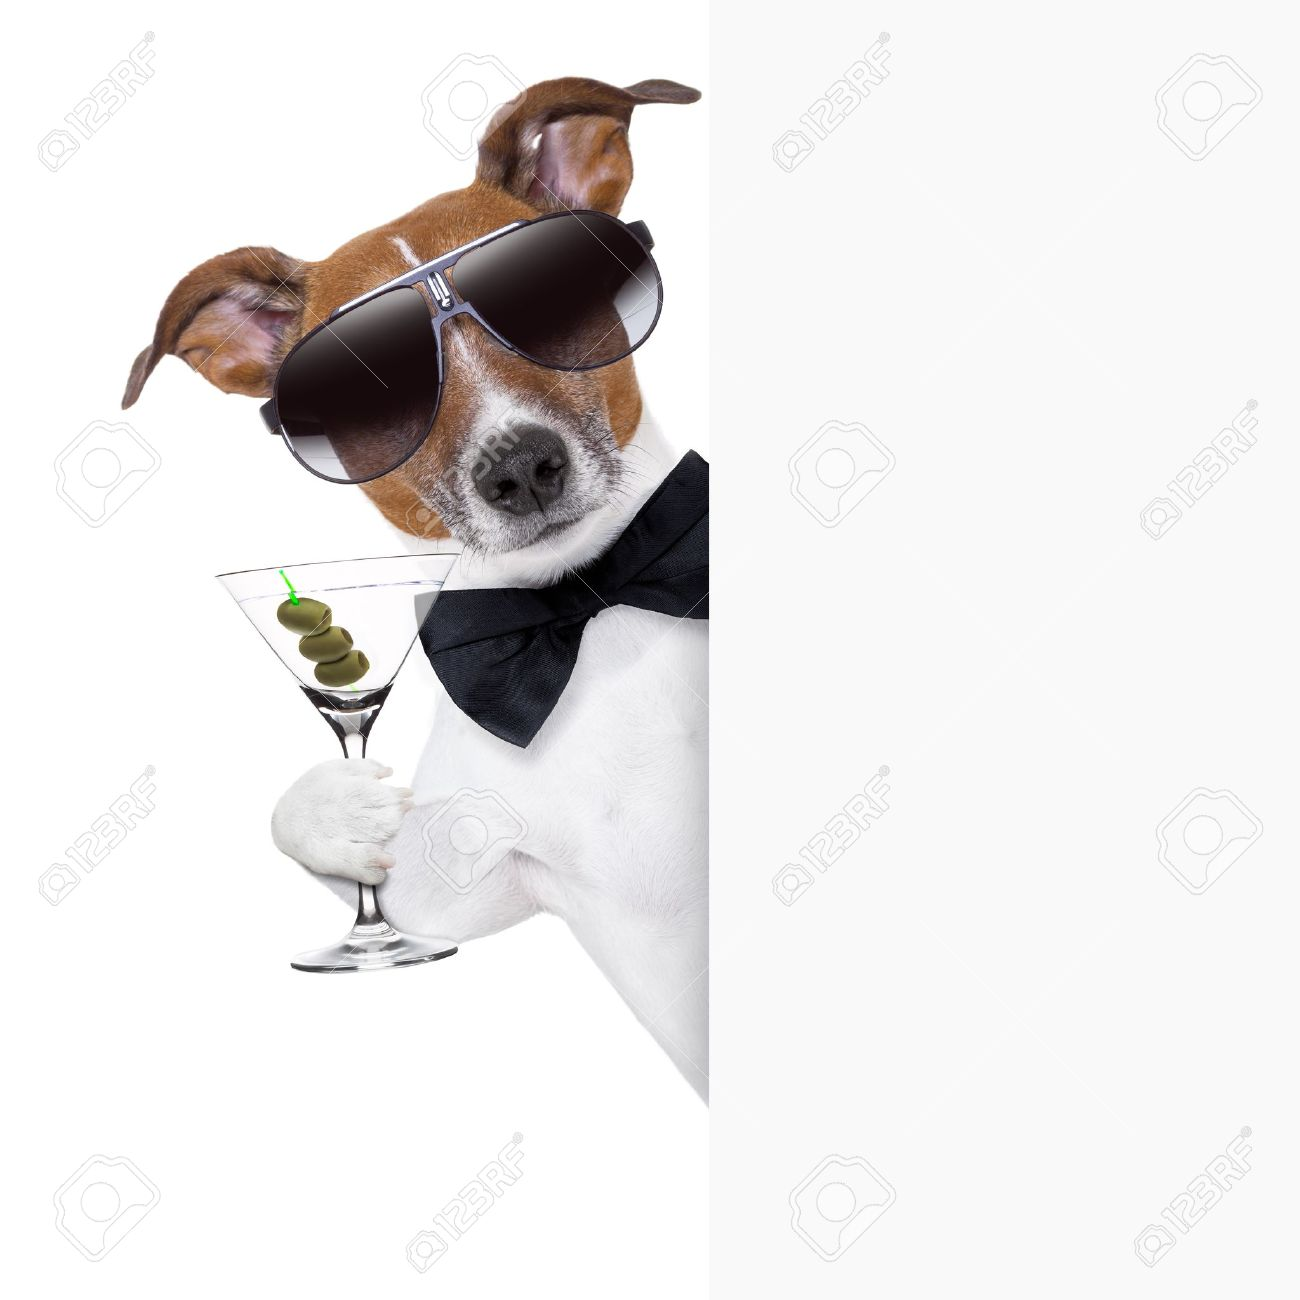 Stock Photo - dog toasting Funny Drinking Toasts